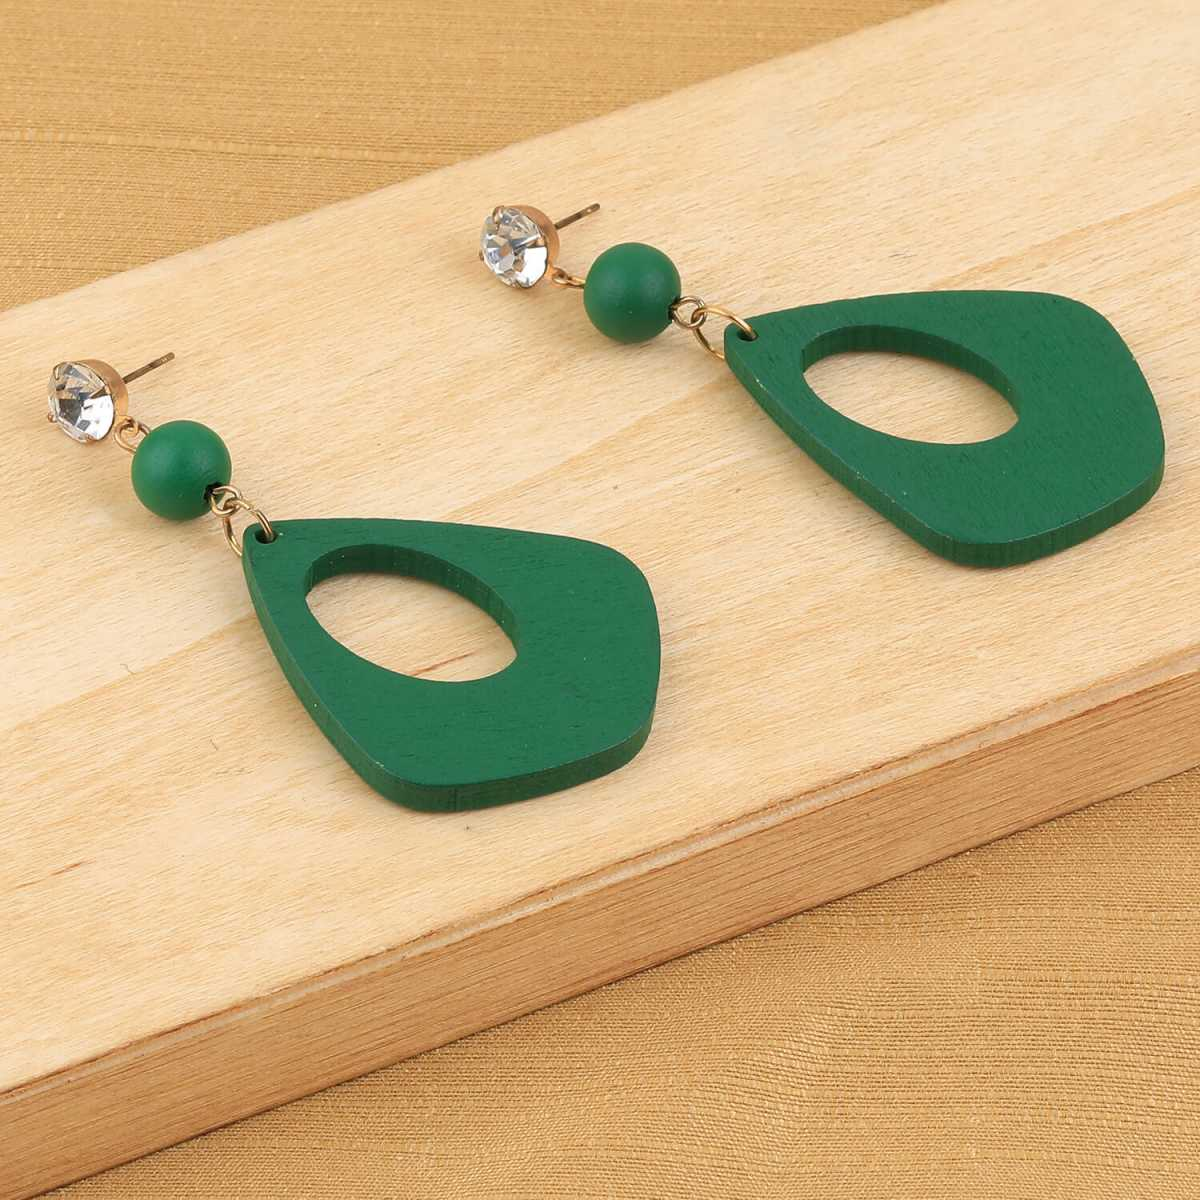 SILVER SHINE Ethnic Drop Diamond Gren Wooden Light Weight Earrings for Girls and Women.